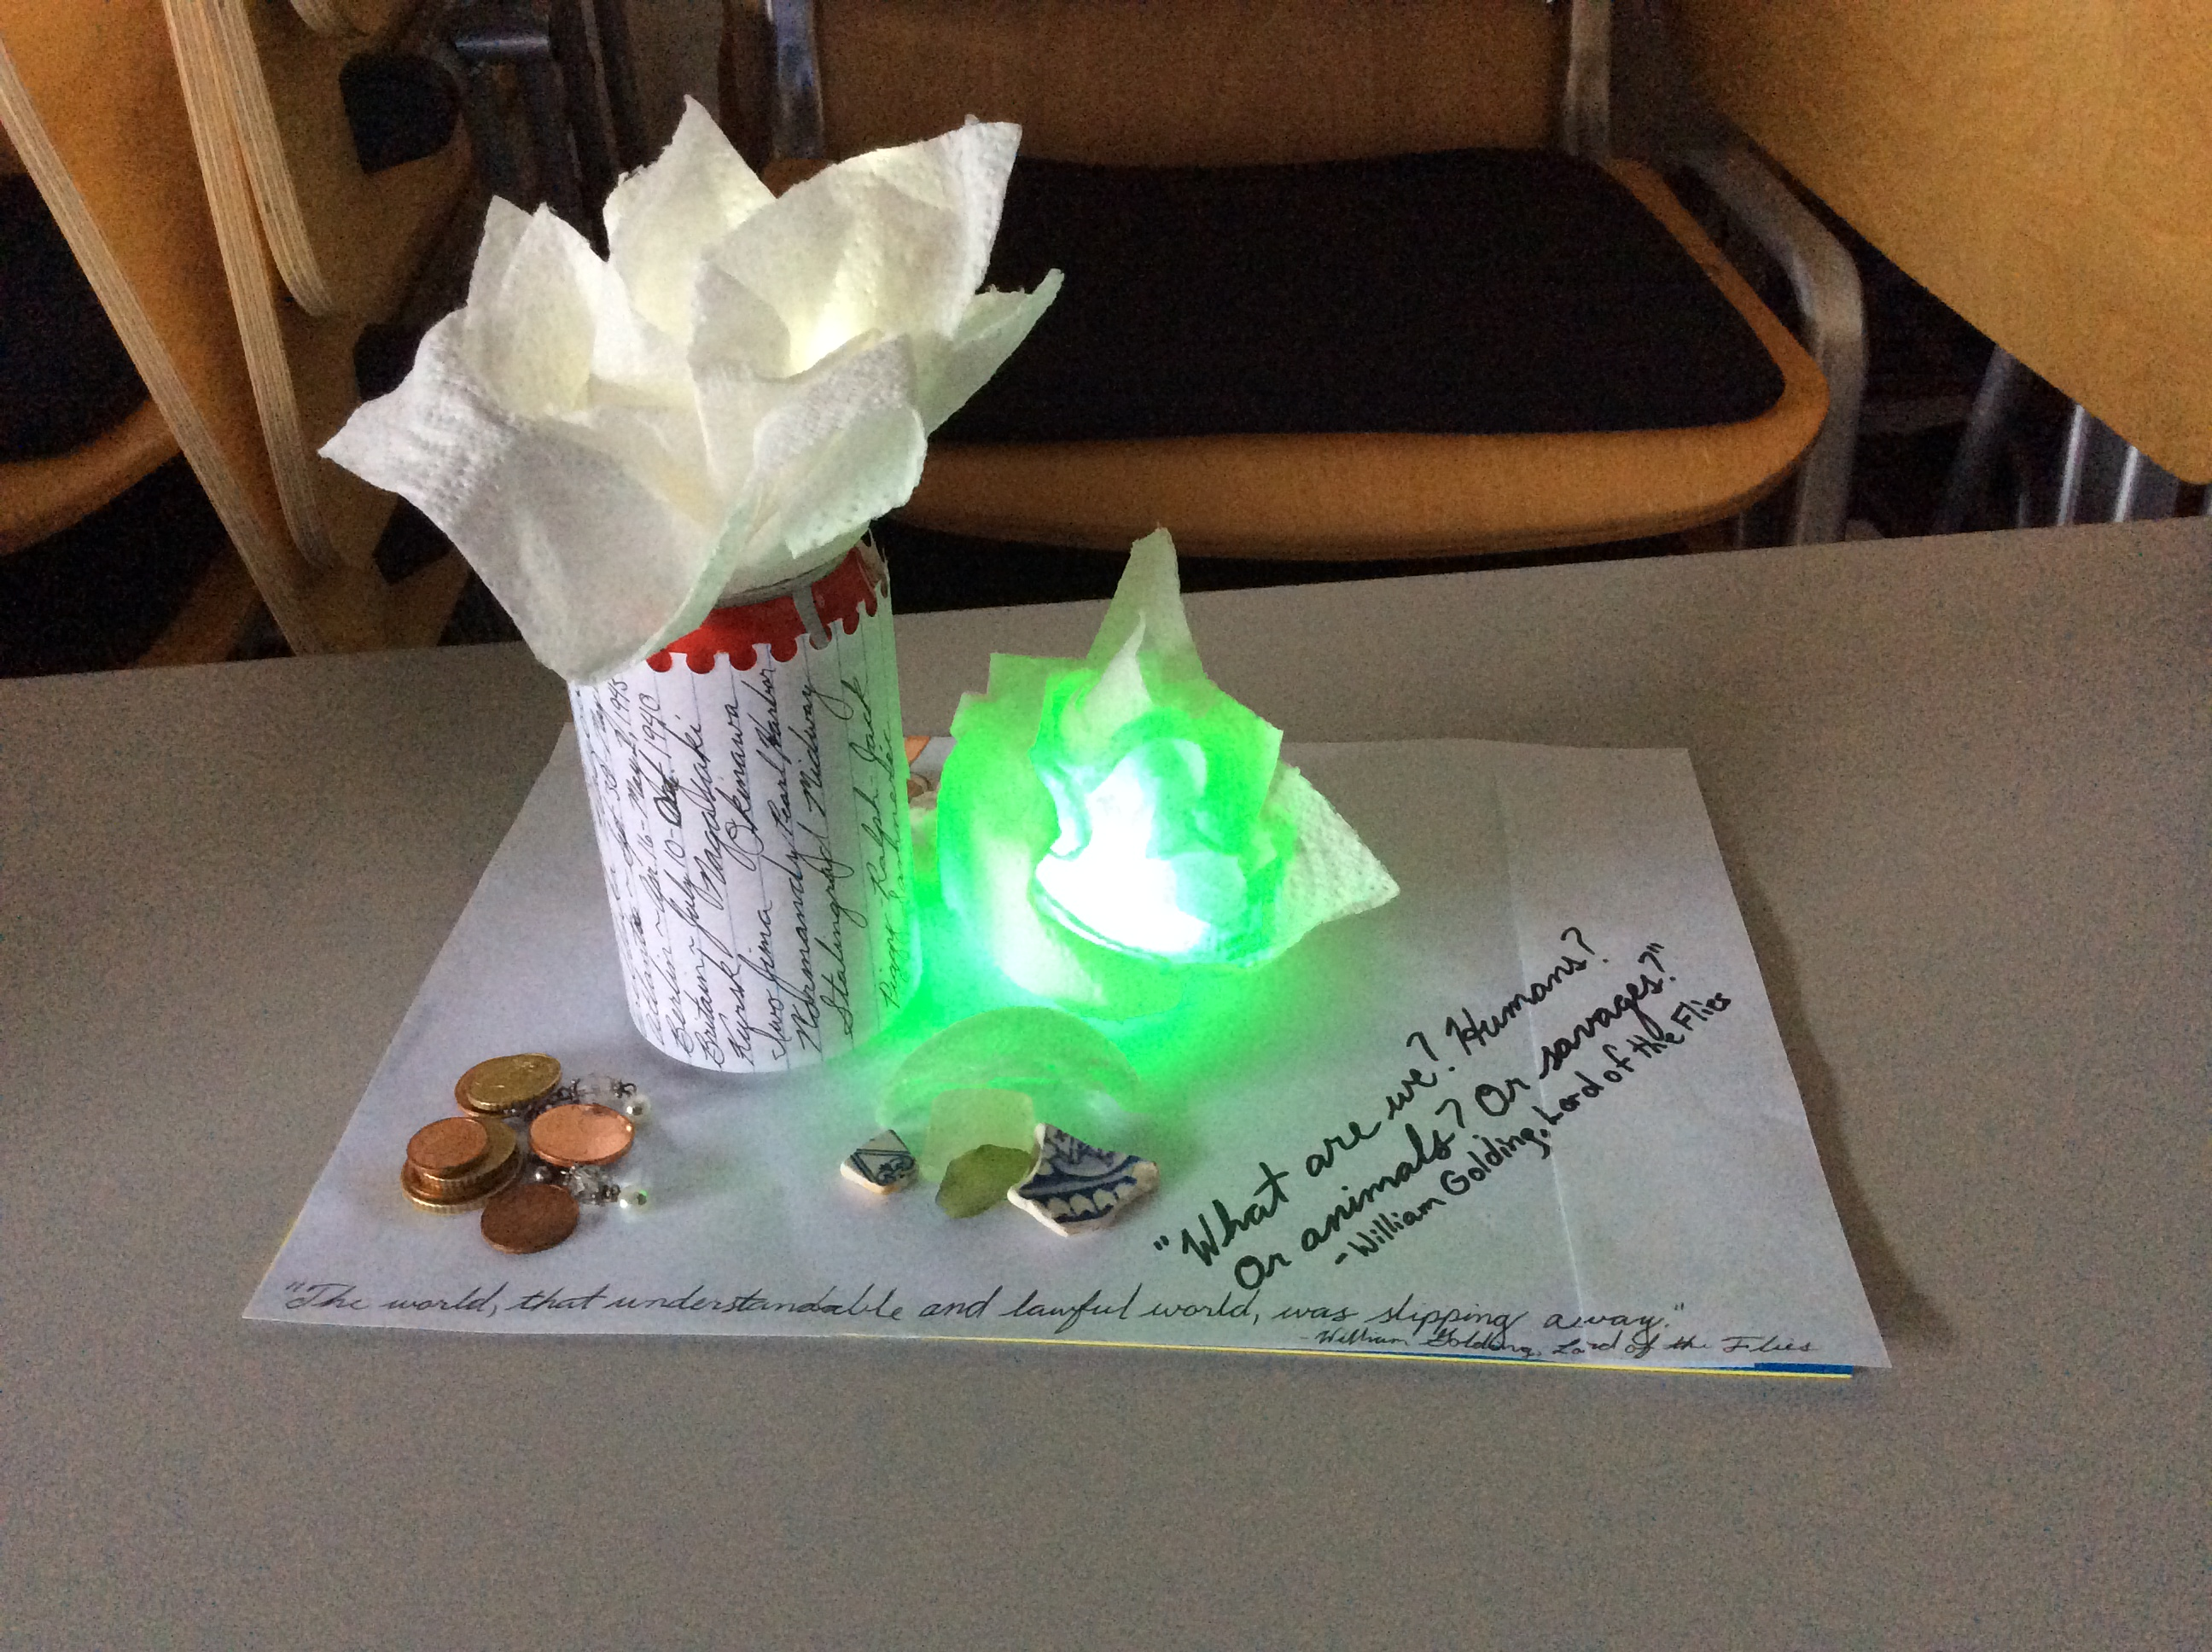 maker project lesson connecting texts through paper circuit the goal of this post is to provide other educators an example of how to use paper circuits in the classroom to enhance and extend the curriculum